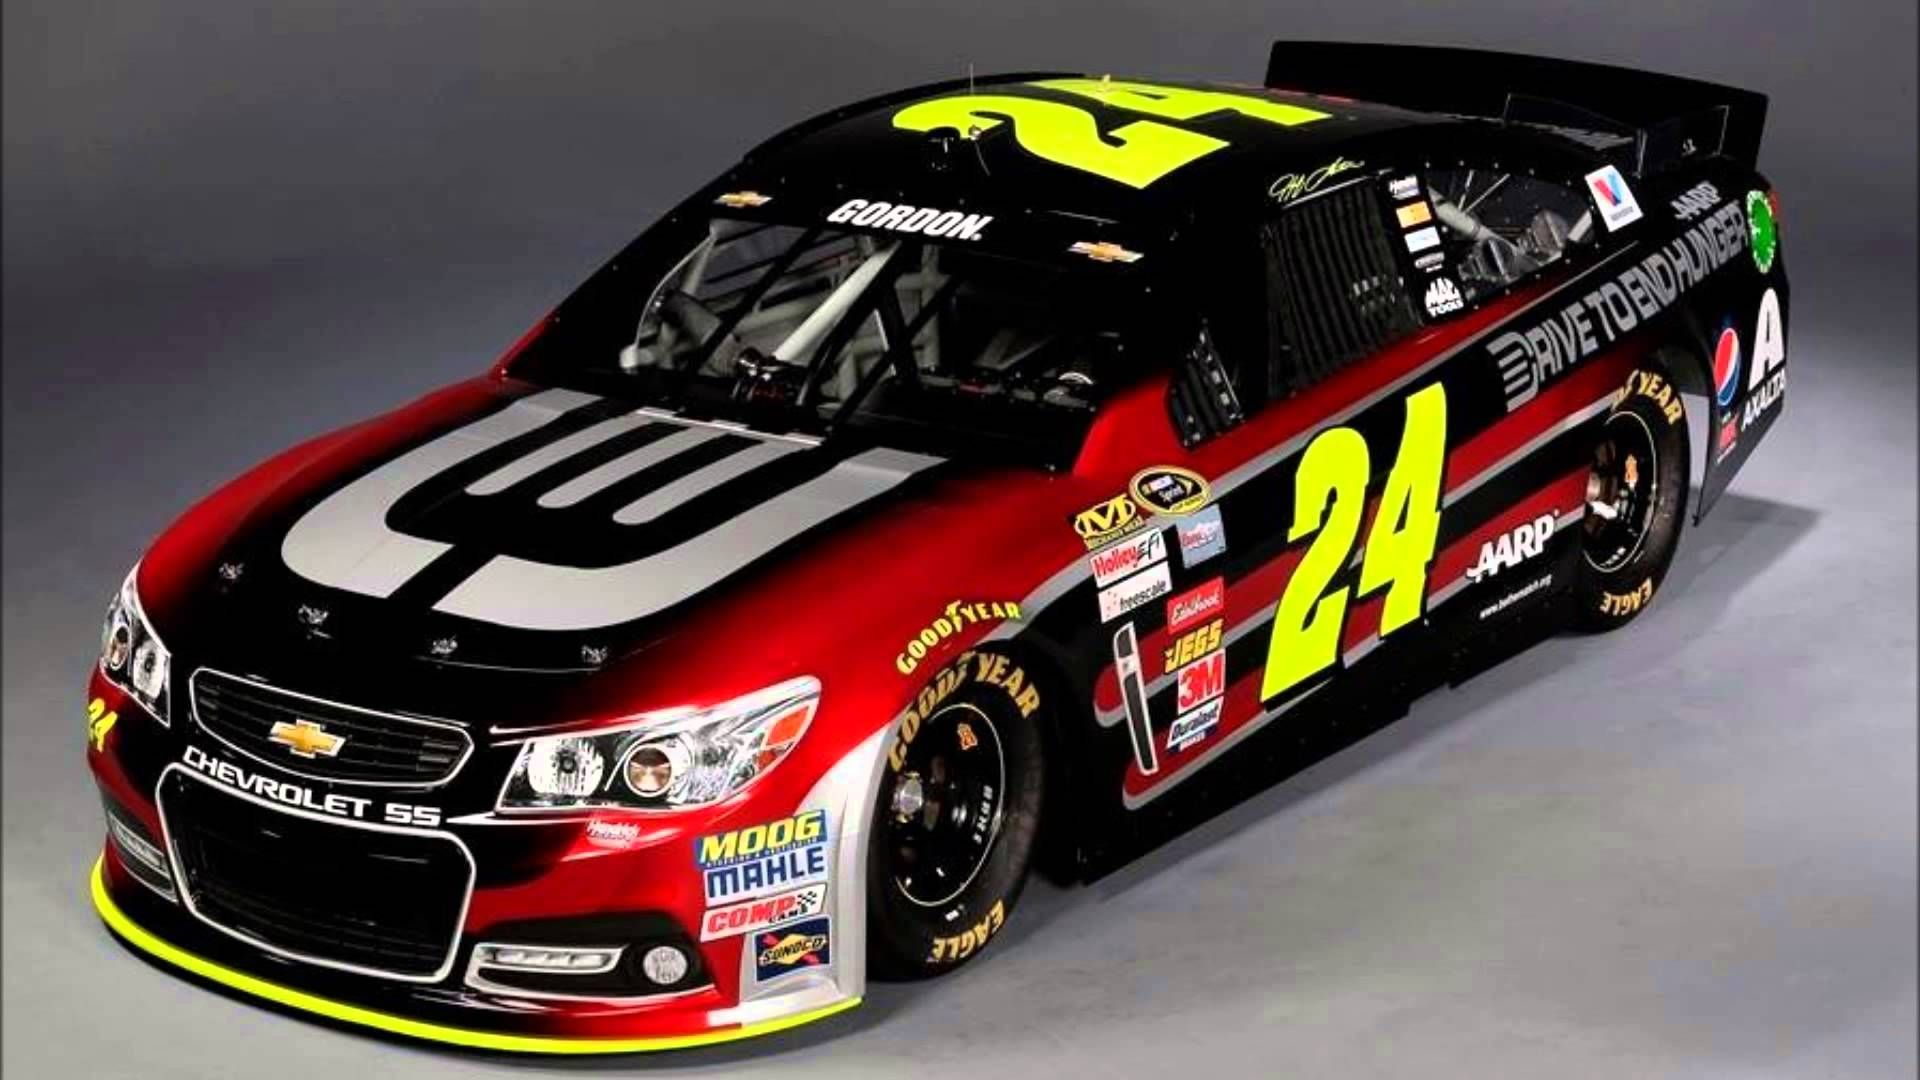 Jeff Gordon Wallpaper Best Cool Wallpaper Hd Download Jeff Gordon Nascar Race Cars Jeff Gordon Nascar